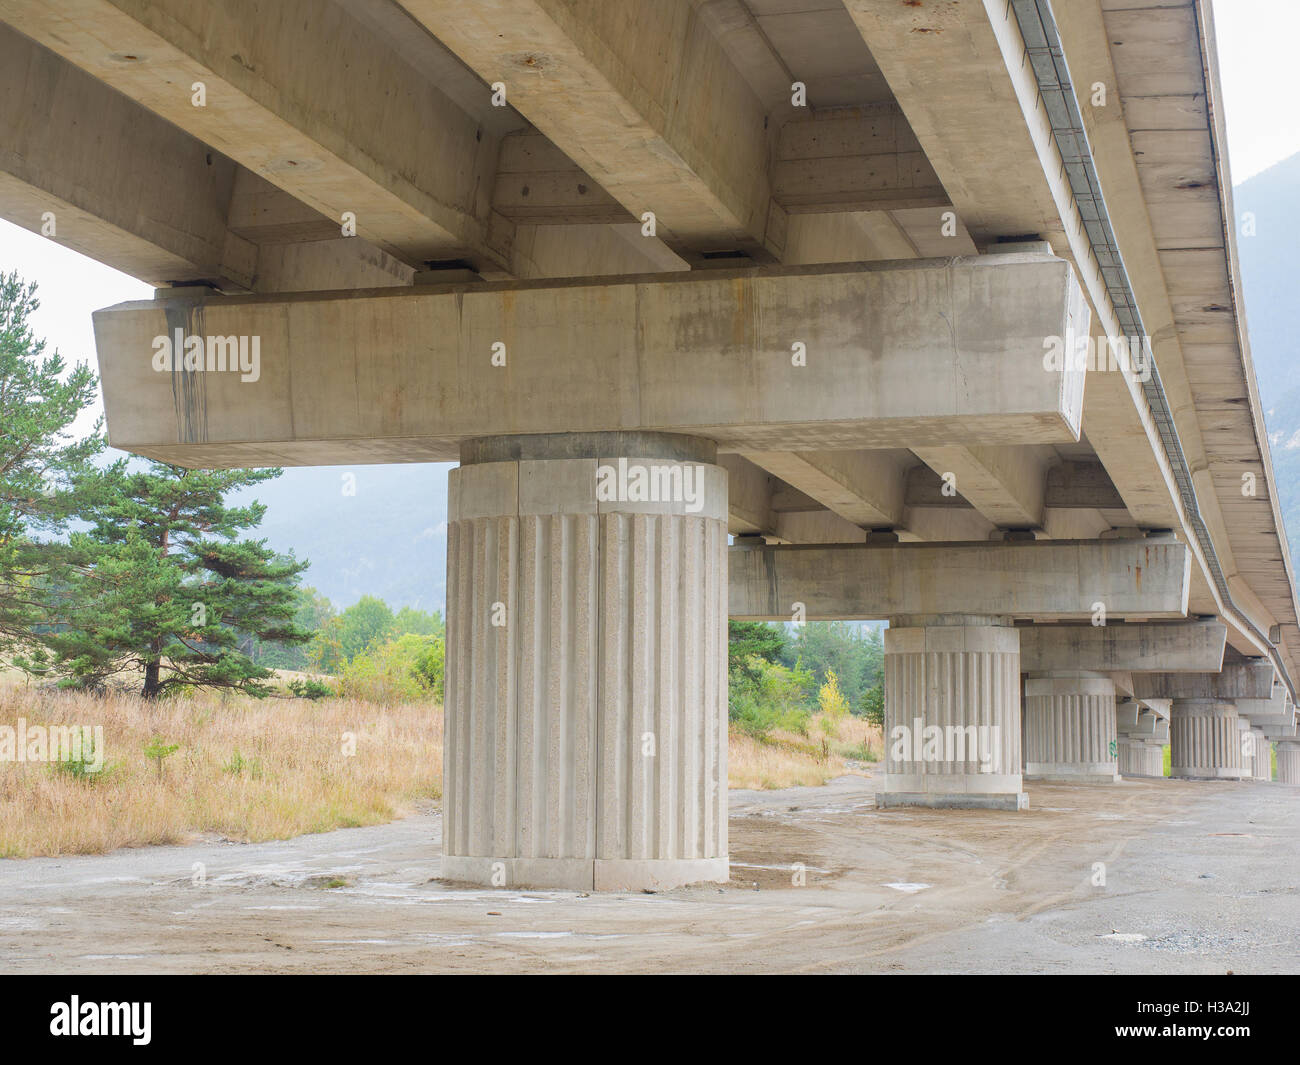 pillars and beams of  a motorway bridge (viaduct) made of reinforced concrete - Stock Image